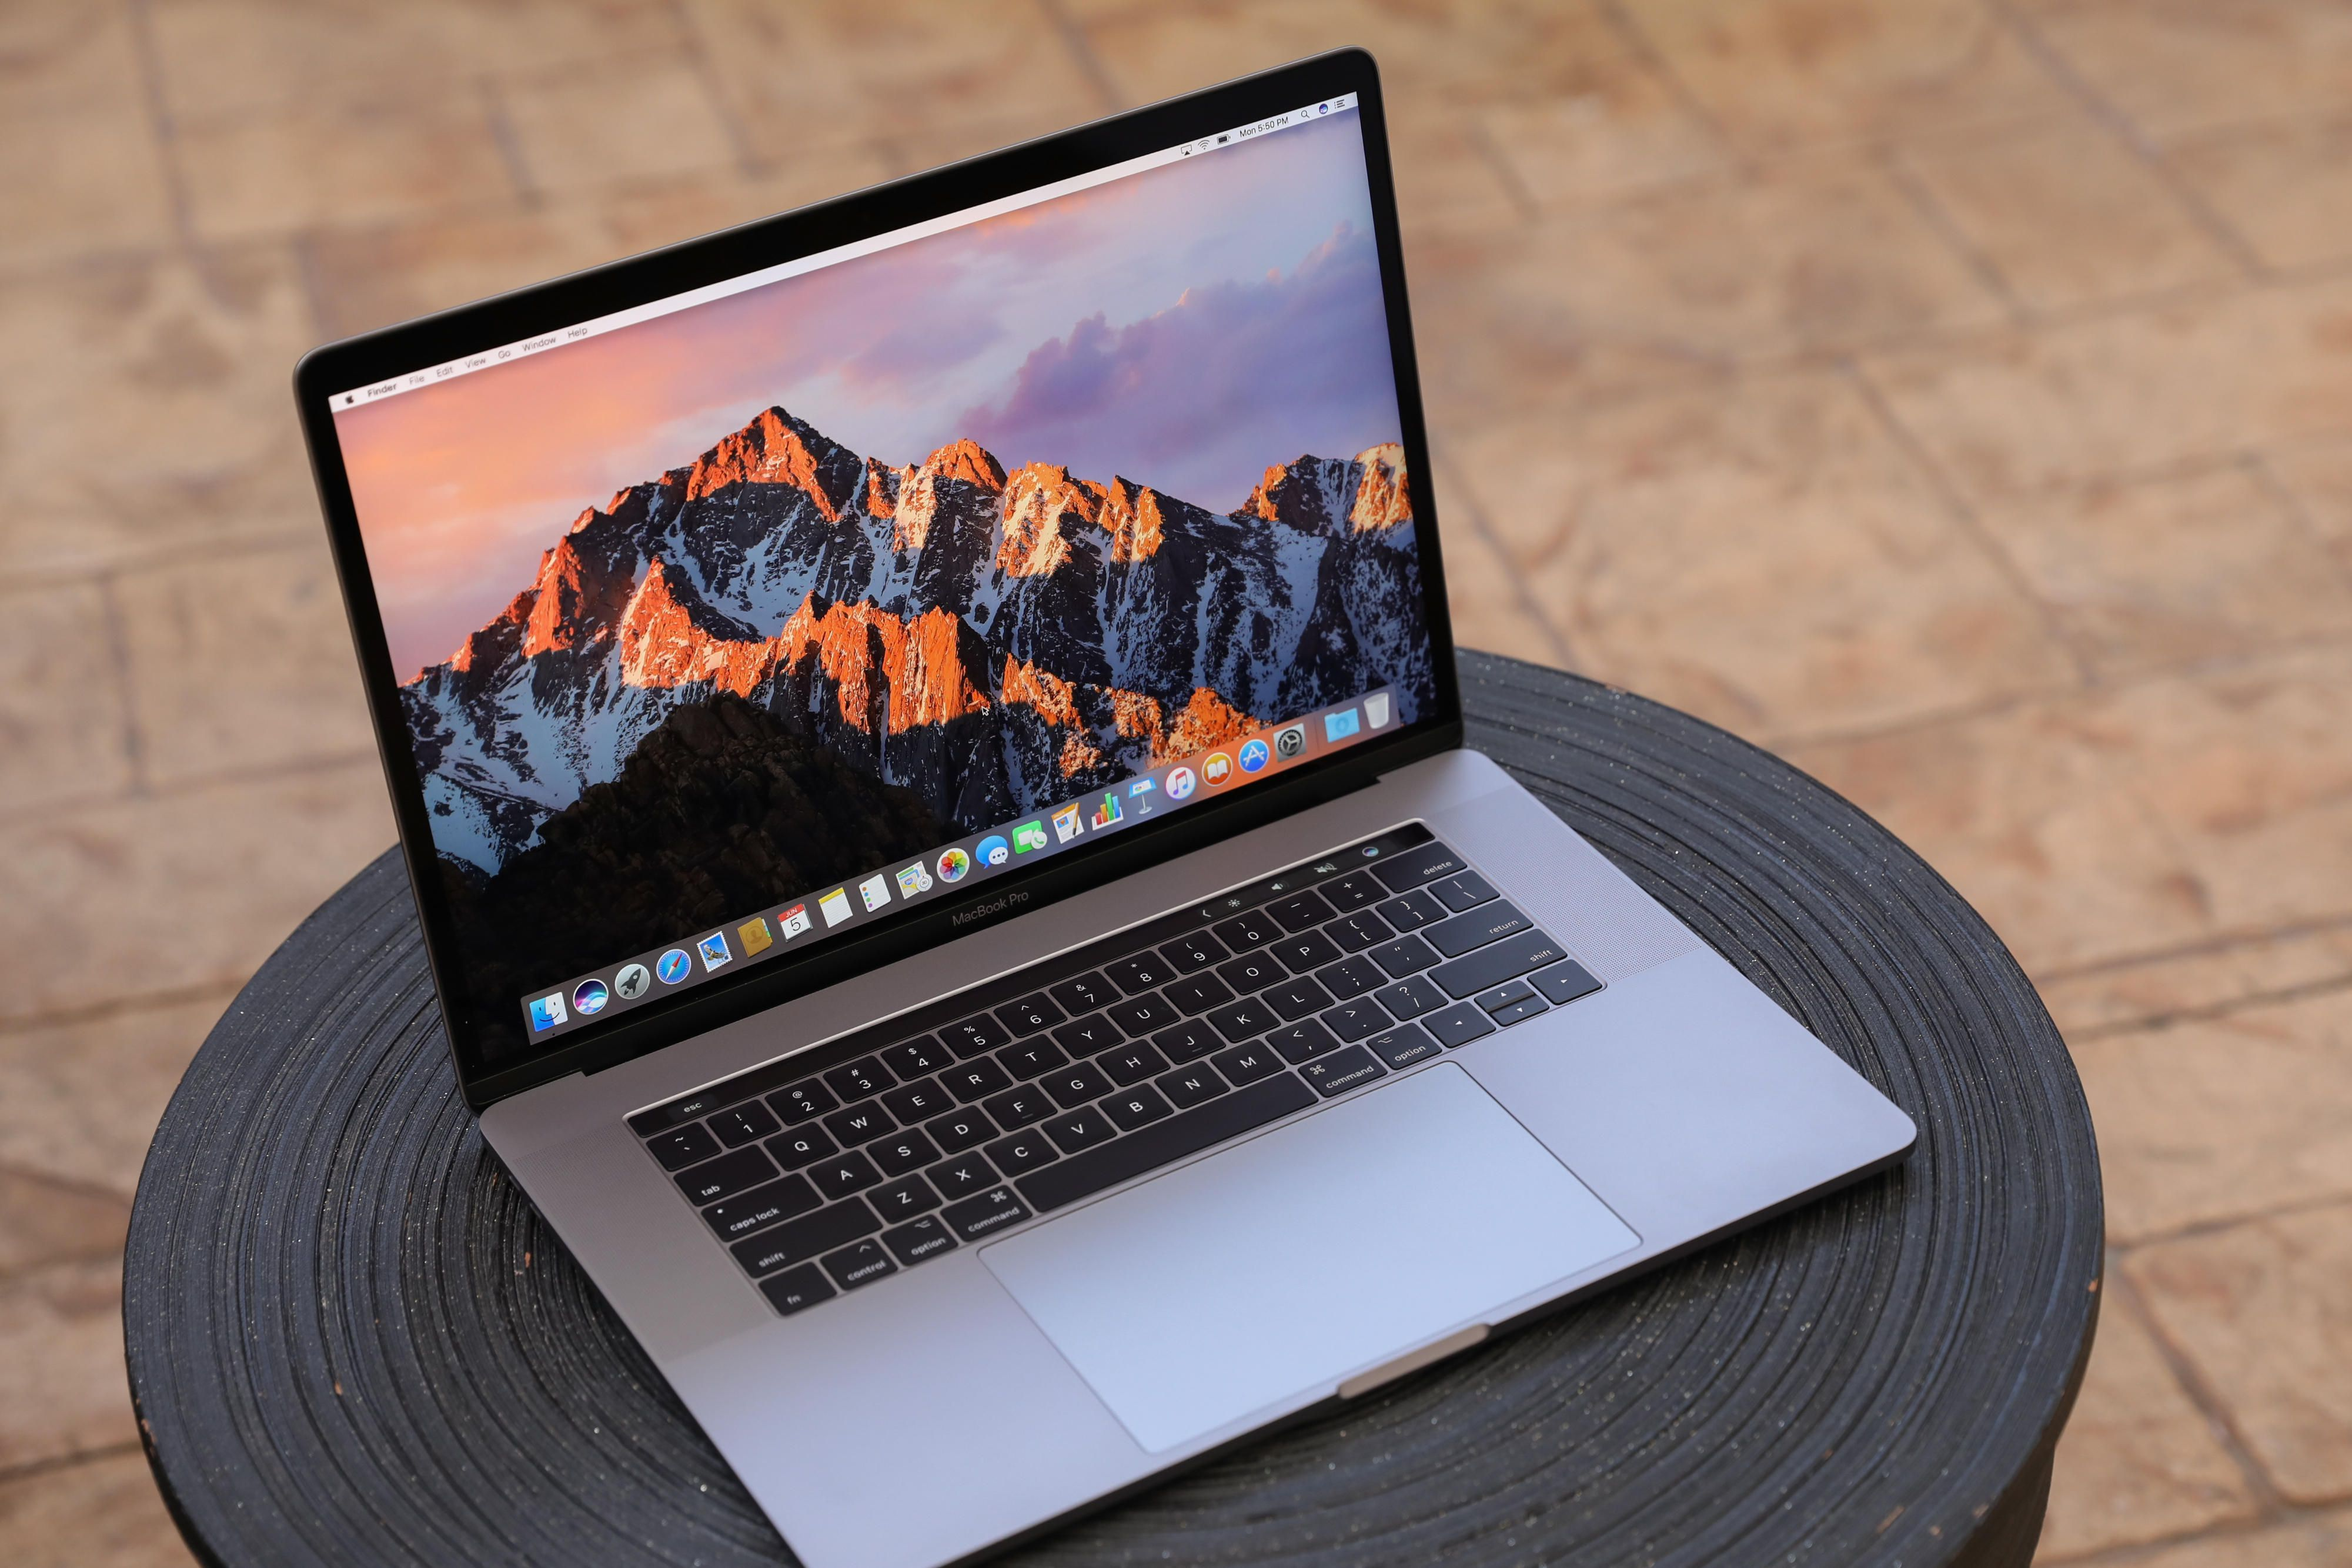 Image Result For Apple Macbook Pro 15 Touch Bar Macbook Pro 2017 Macbook Pro Macbook Pro 15 Inch